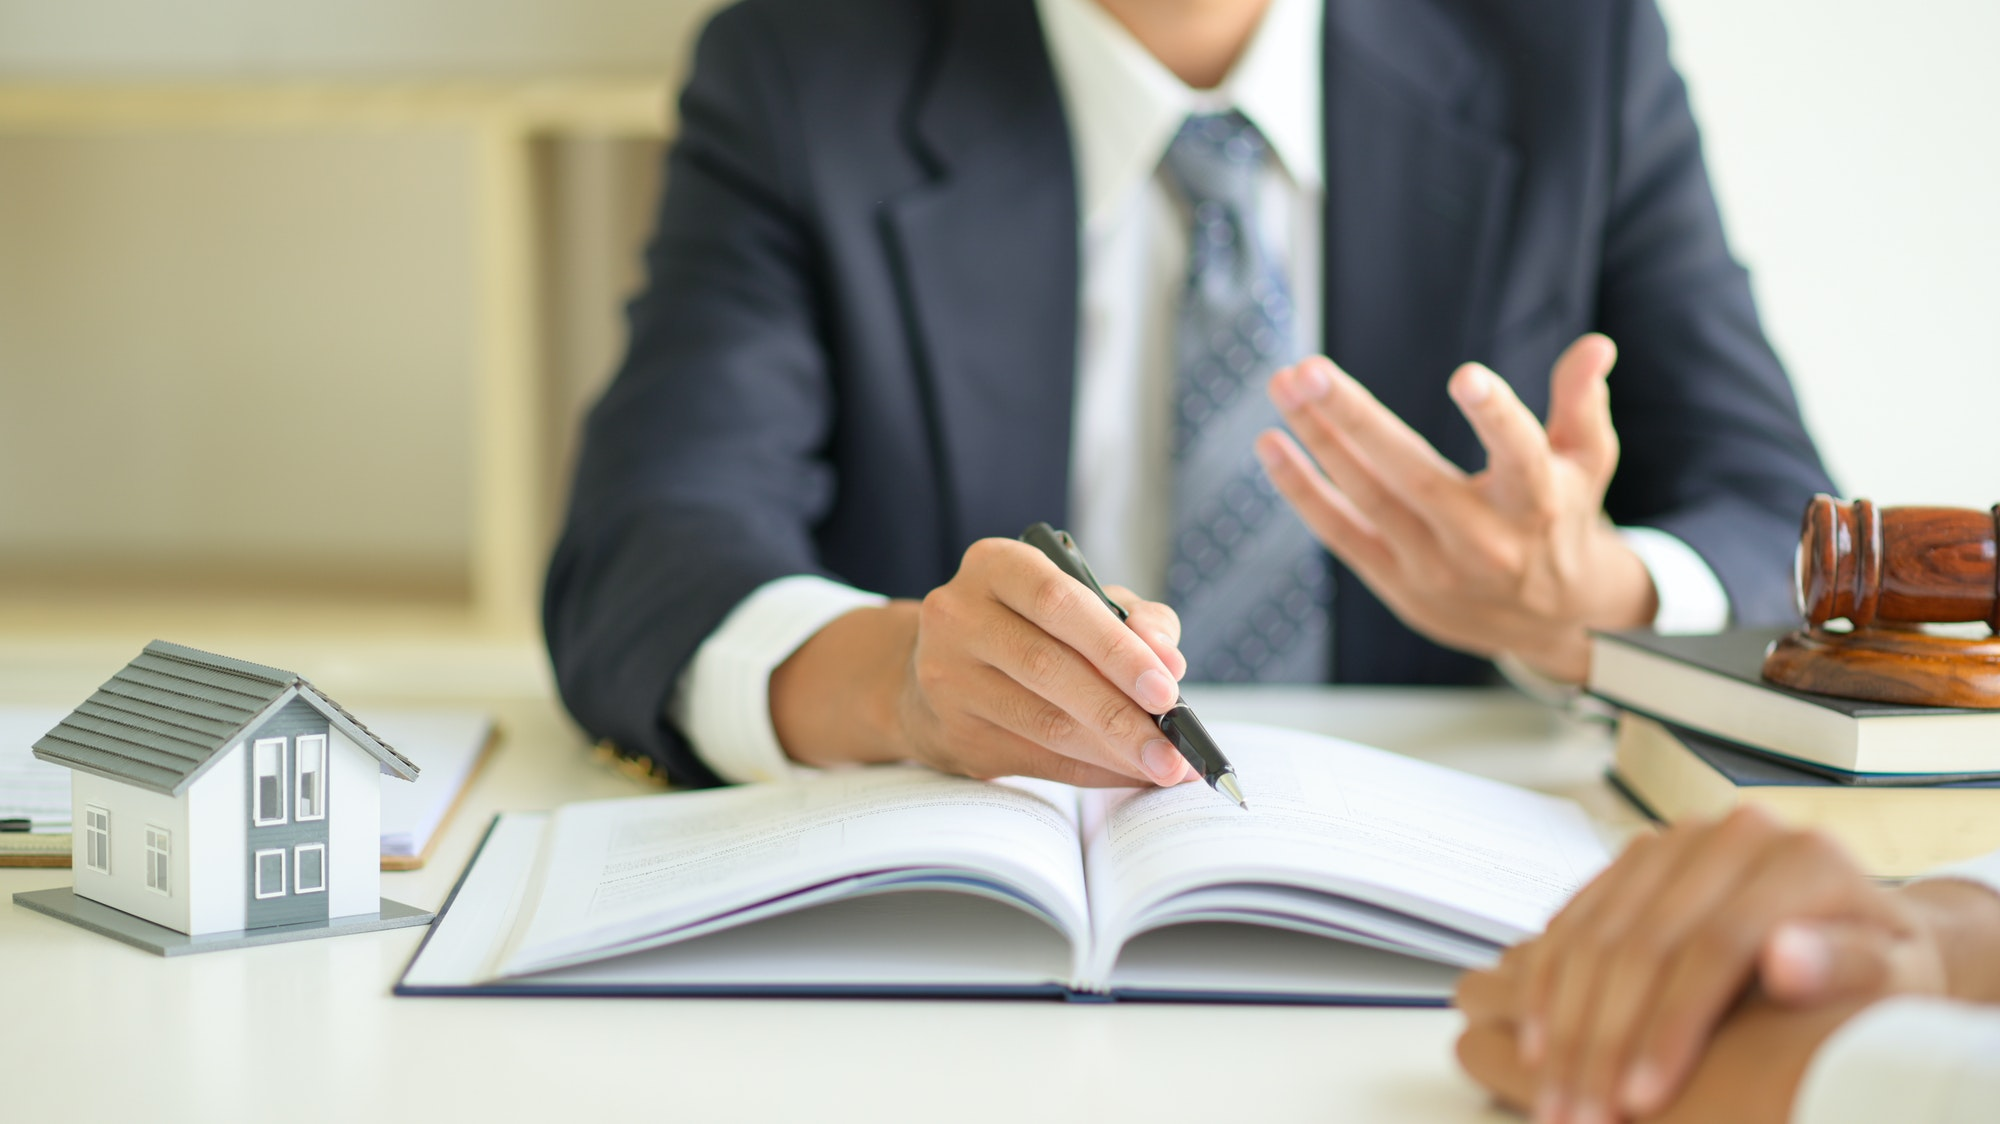 Lawyers are advising clients about real estate law.